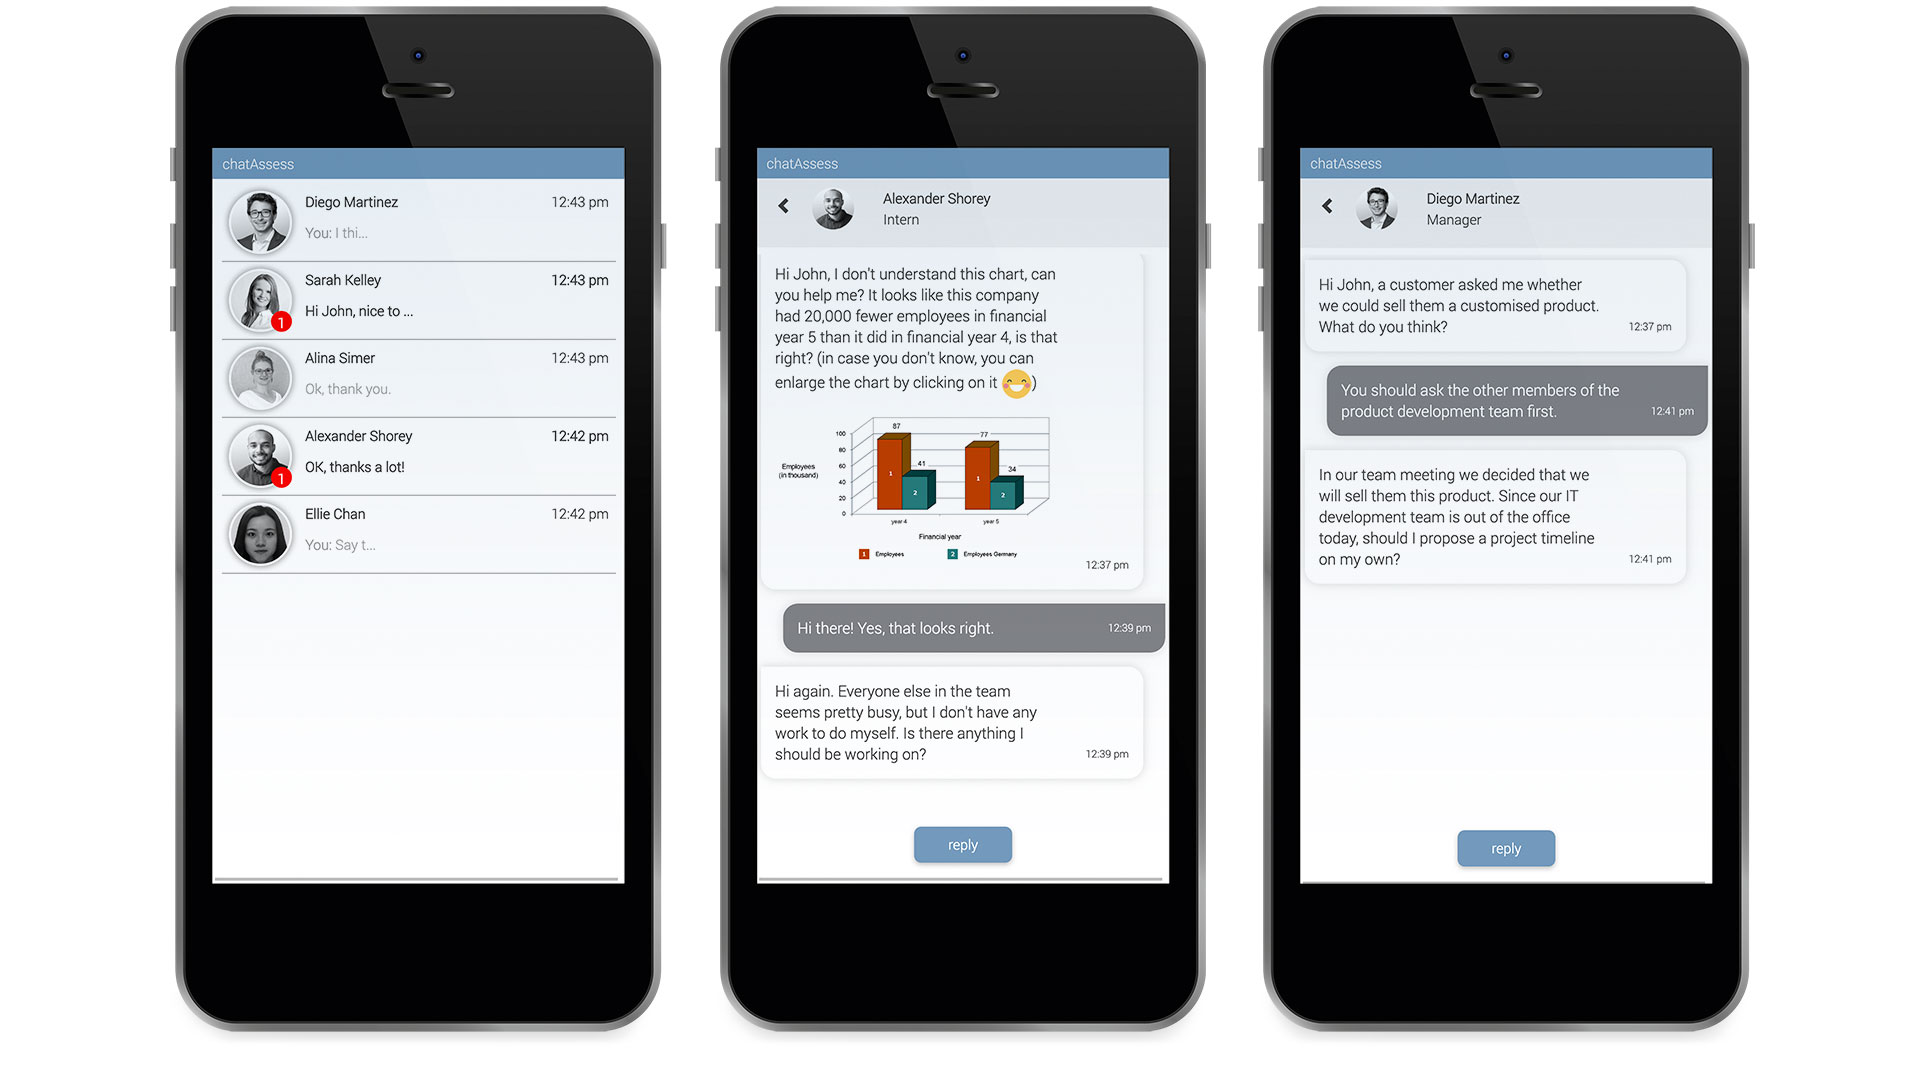 mobile screens gamified assessment chatAssess